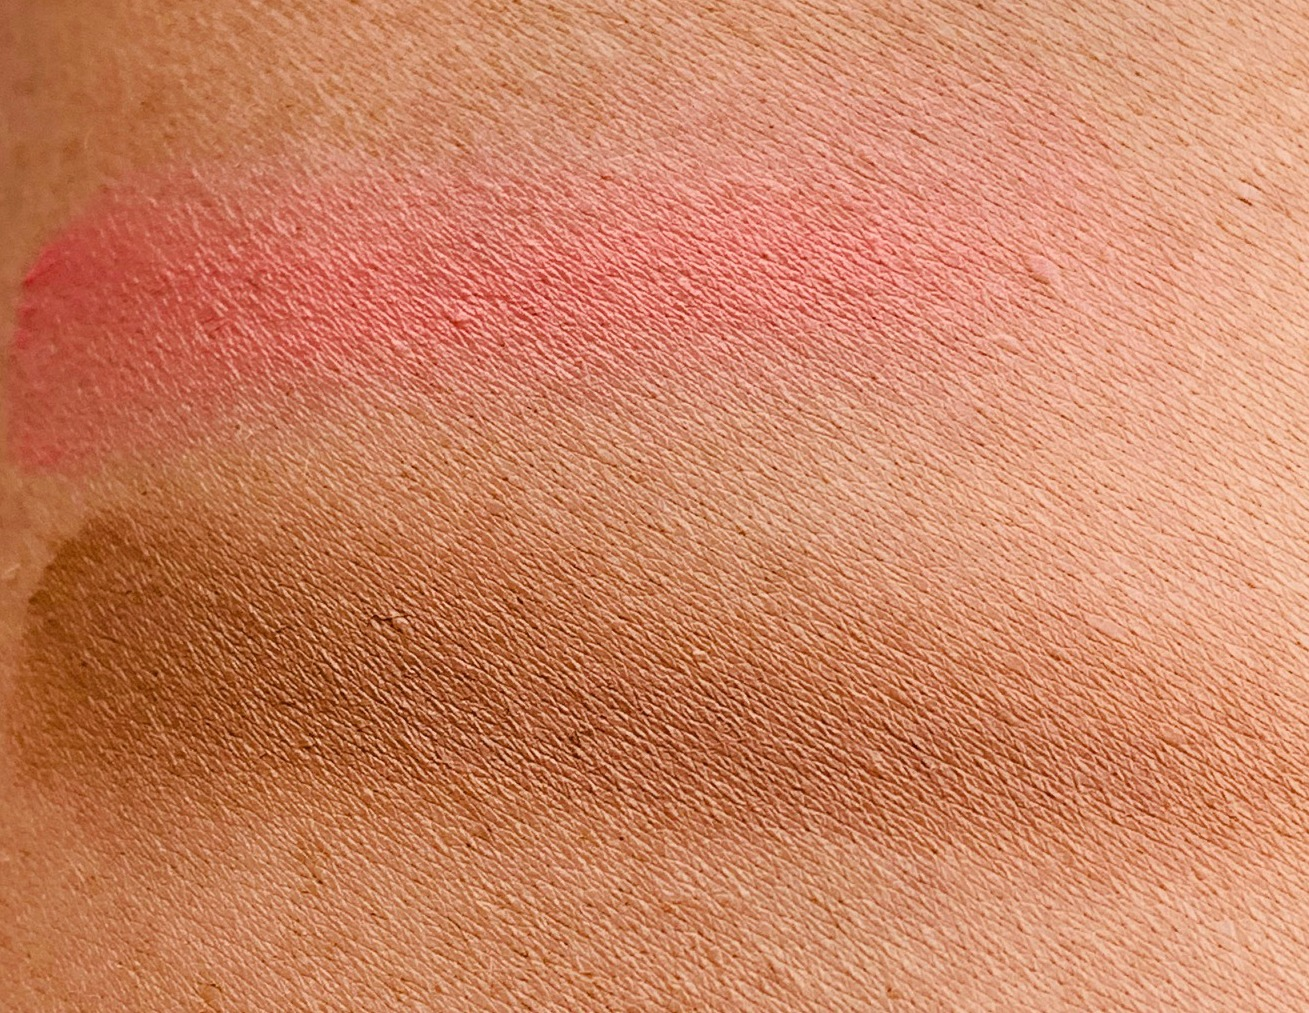 Fenty Beauty cream cheek products - worth the hype?, Fenty Macchiato Swatch, Fenty Petal Poppin Swatch